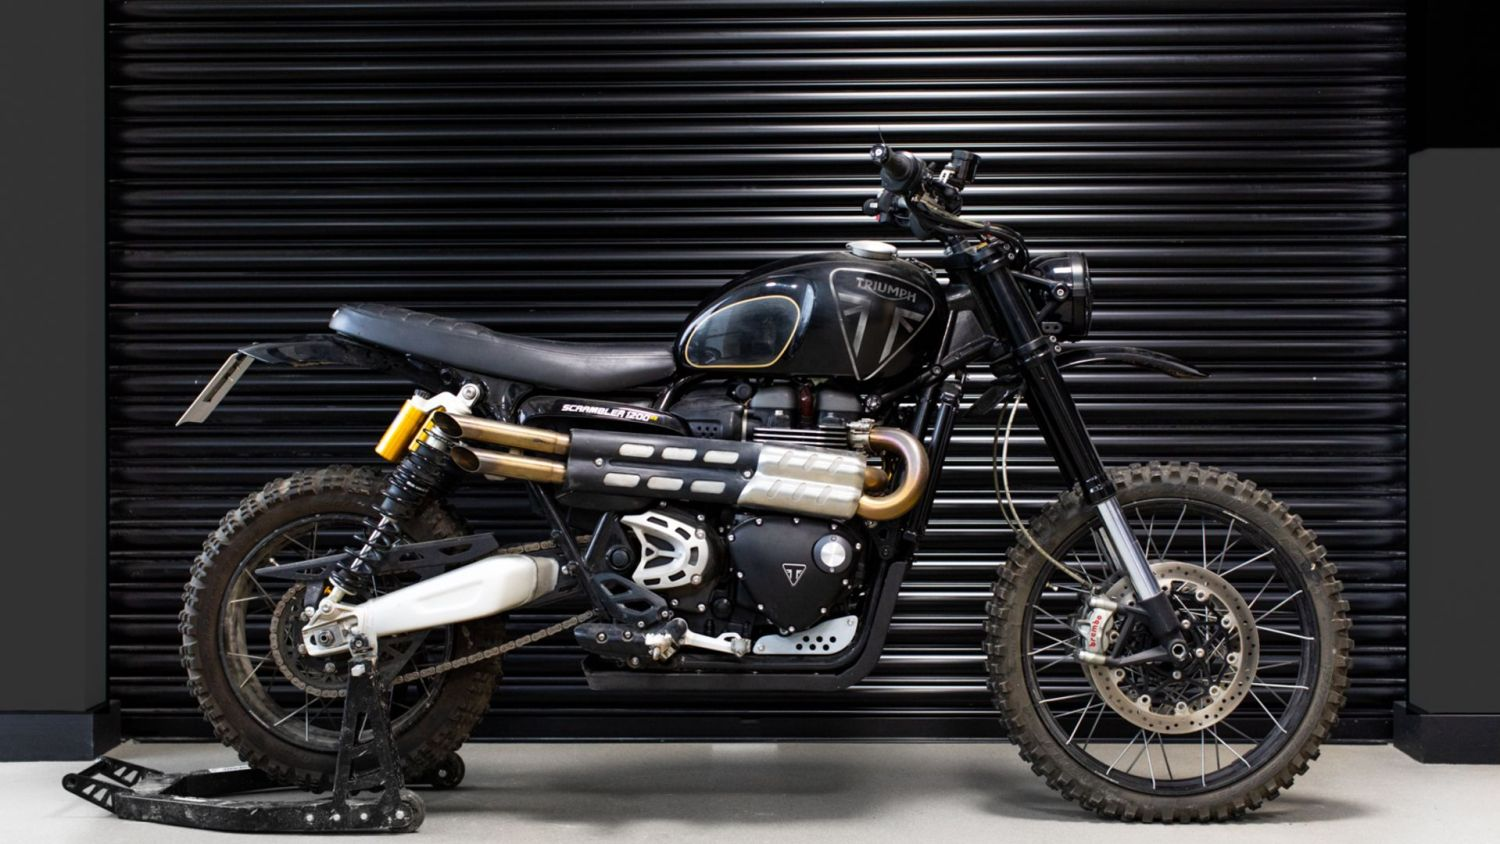 Triumph Tiger And Scrambler Star In No Time To Die Bond Movie